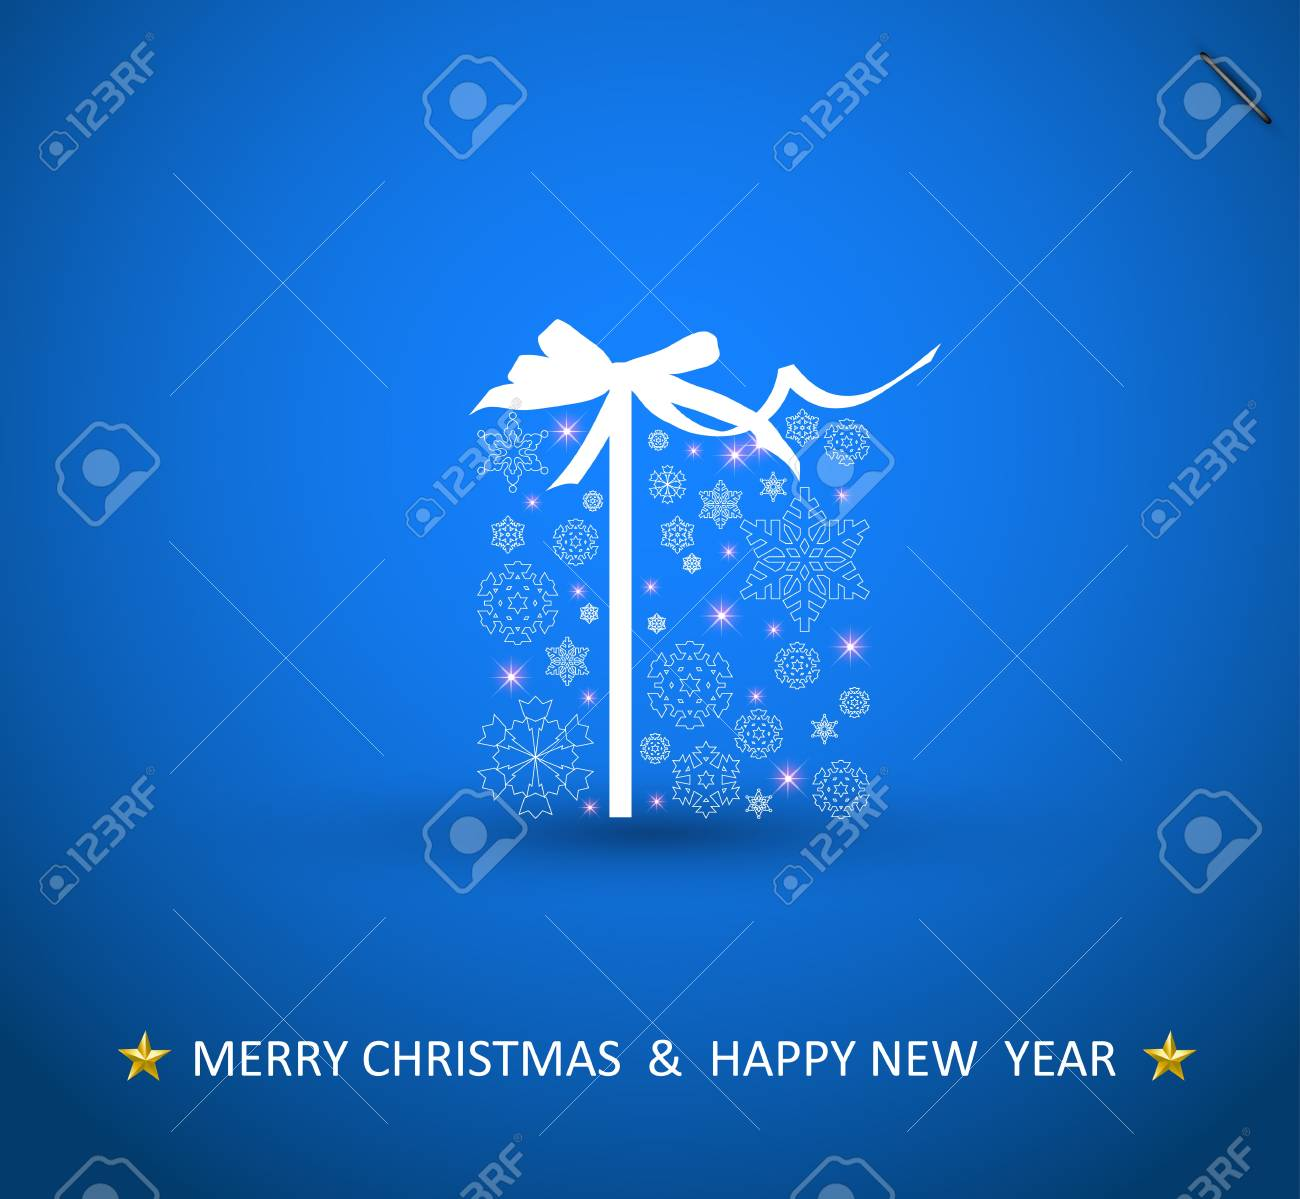 Christmas Box, snowflake design Stock Vector - 11595976